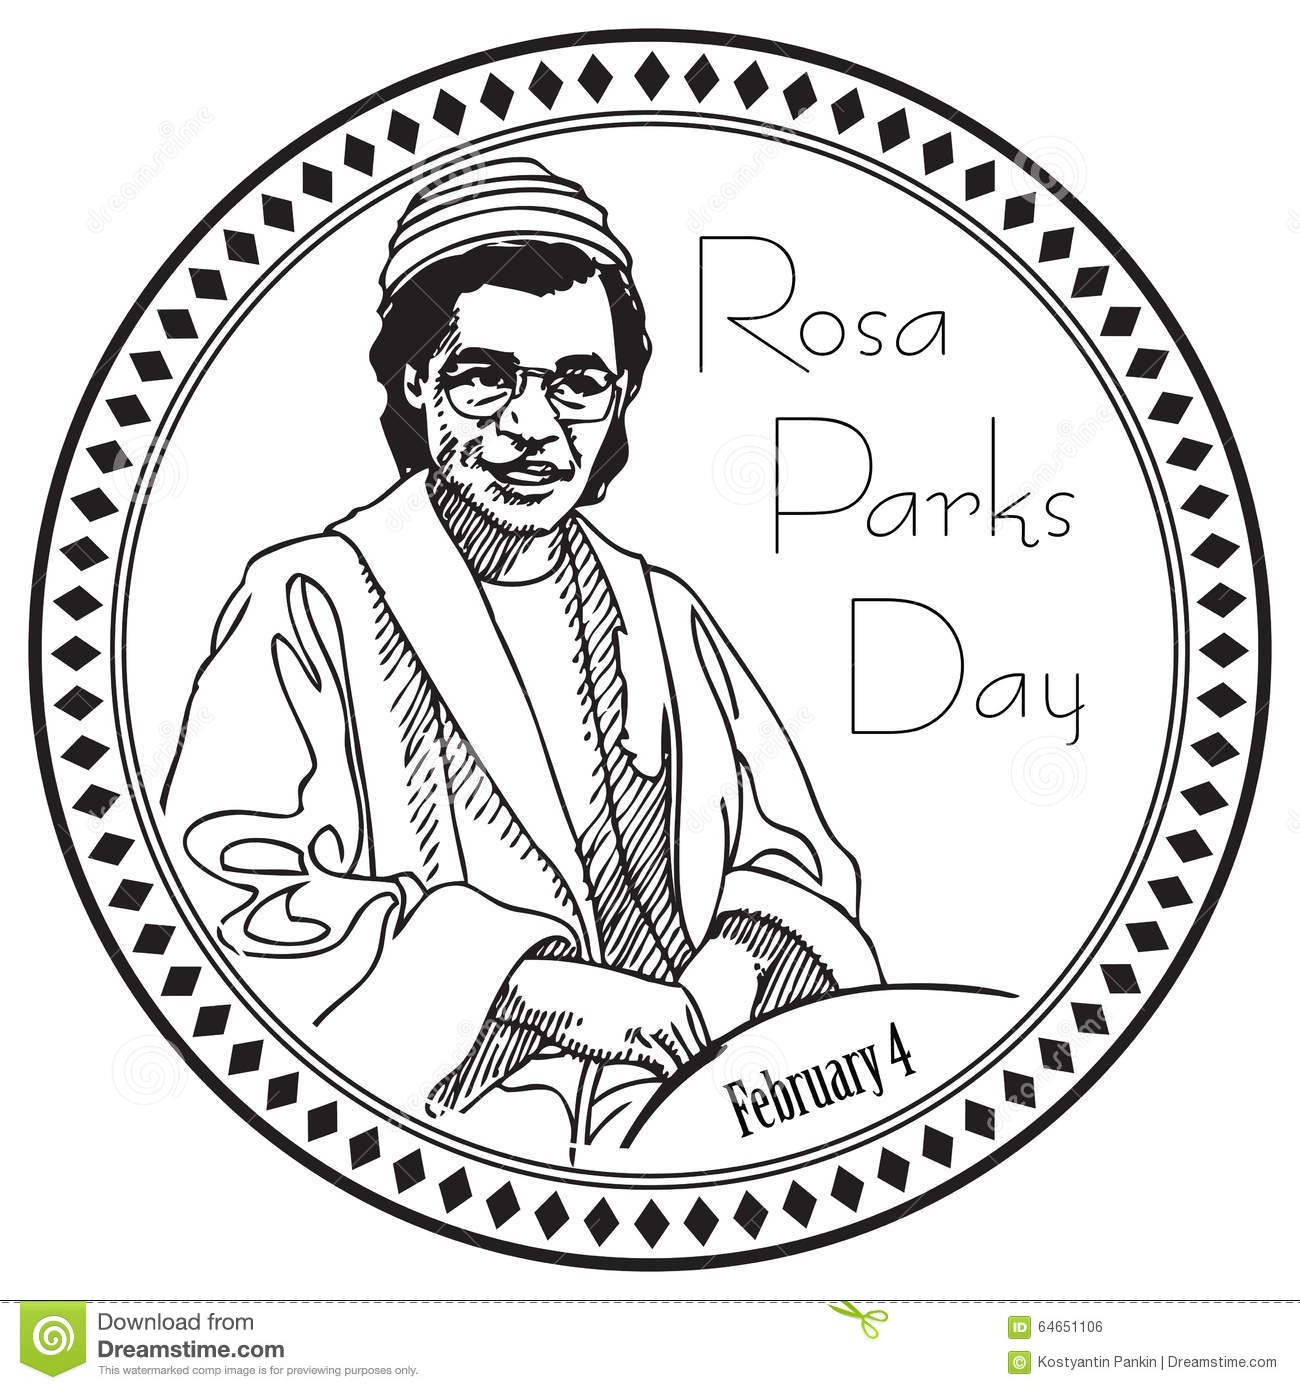 Rosa Parks Day Stock Vector Illustration Of Event